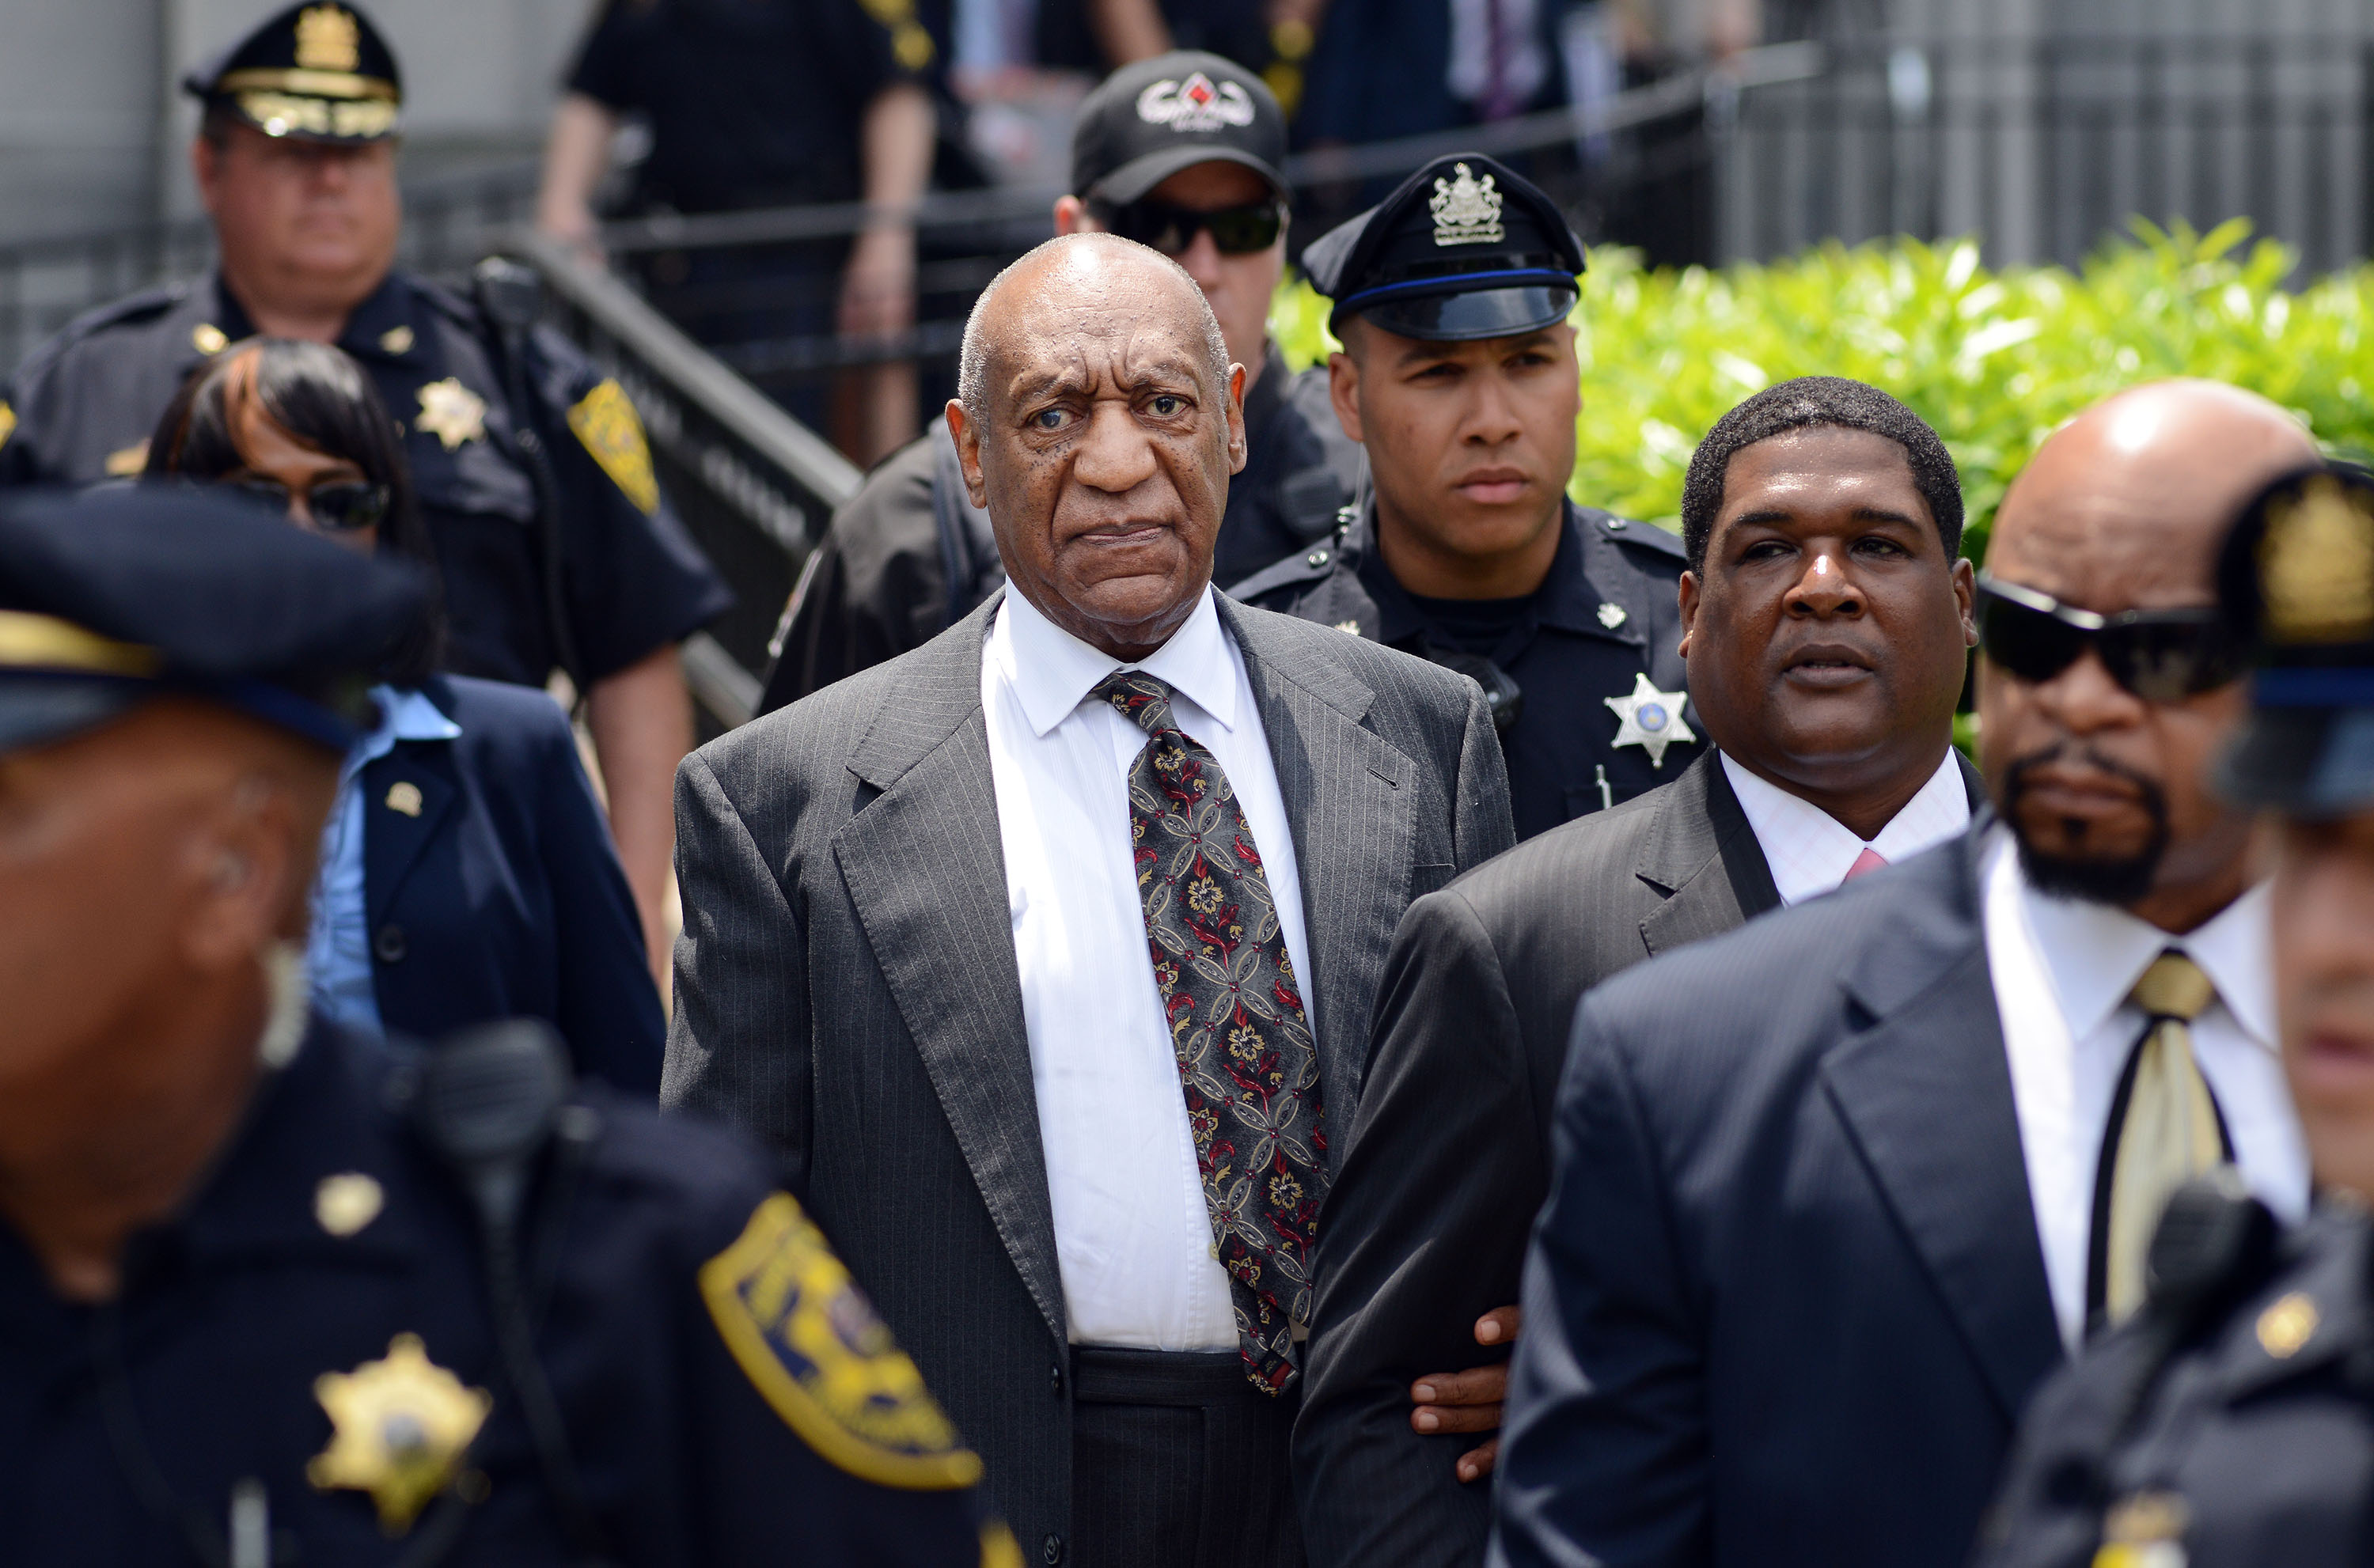 Actor and comedian Bill Cosby leaves a preliminary hearing on sexual assault charges on May 24, 2016 in at Montgomery County Courthouse in Norristown. (William Thomas Cain/Getty)